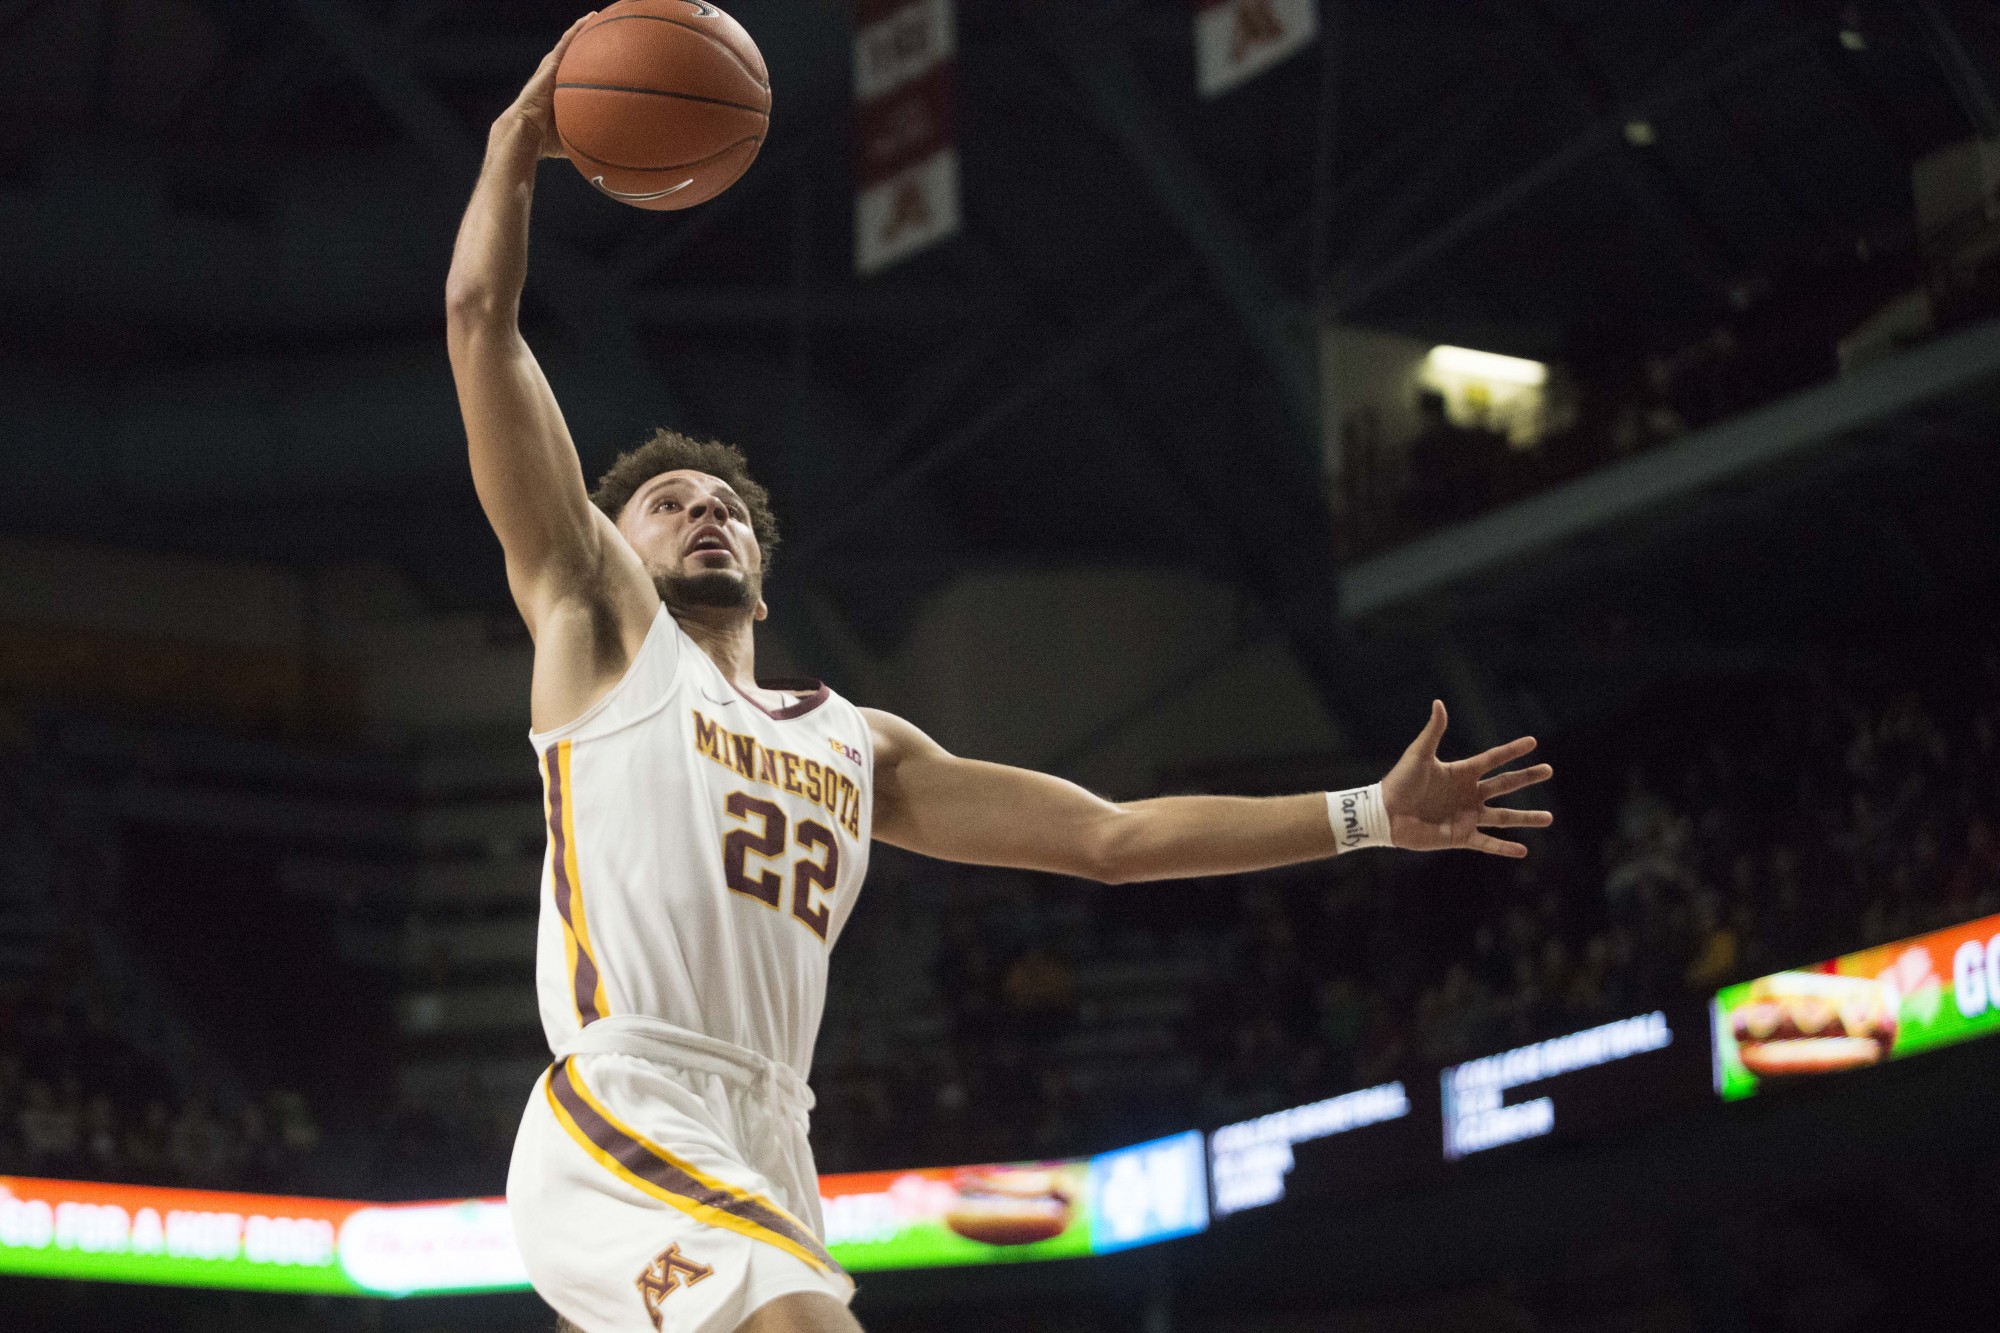 Guard Gabe Kalscheur goes for a layup at Williams Arena on Sunday, Nov. 24. The Gophers defeated North Dakota 79-56.